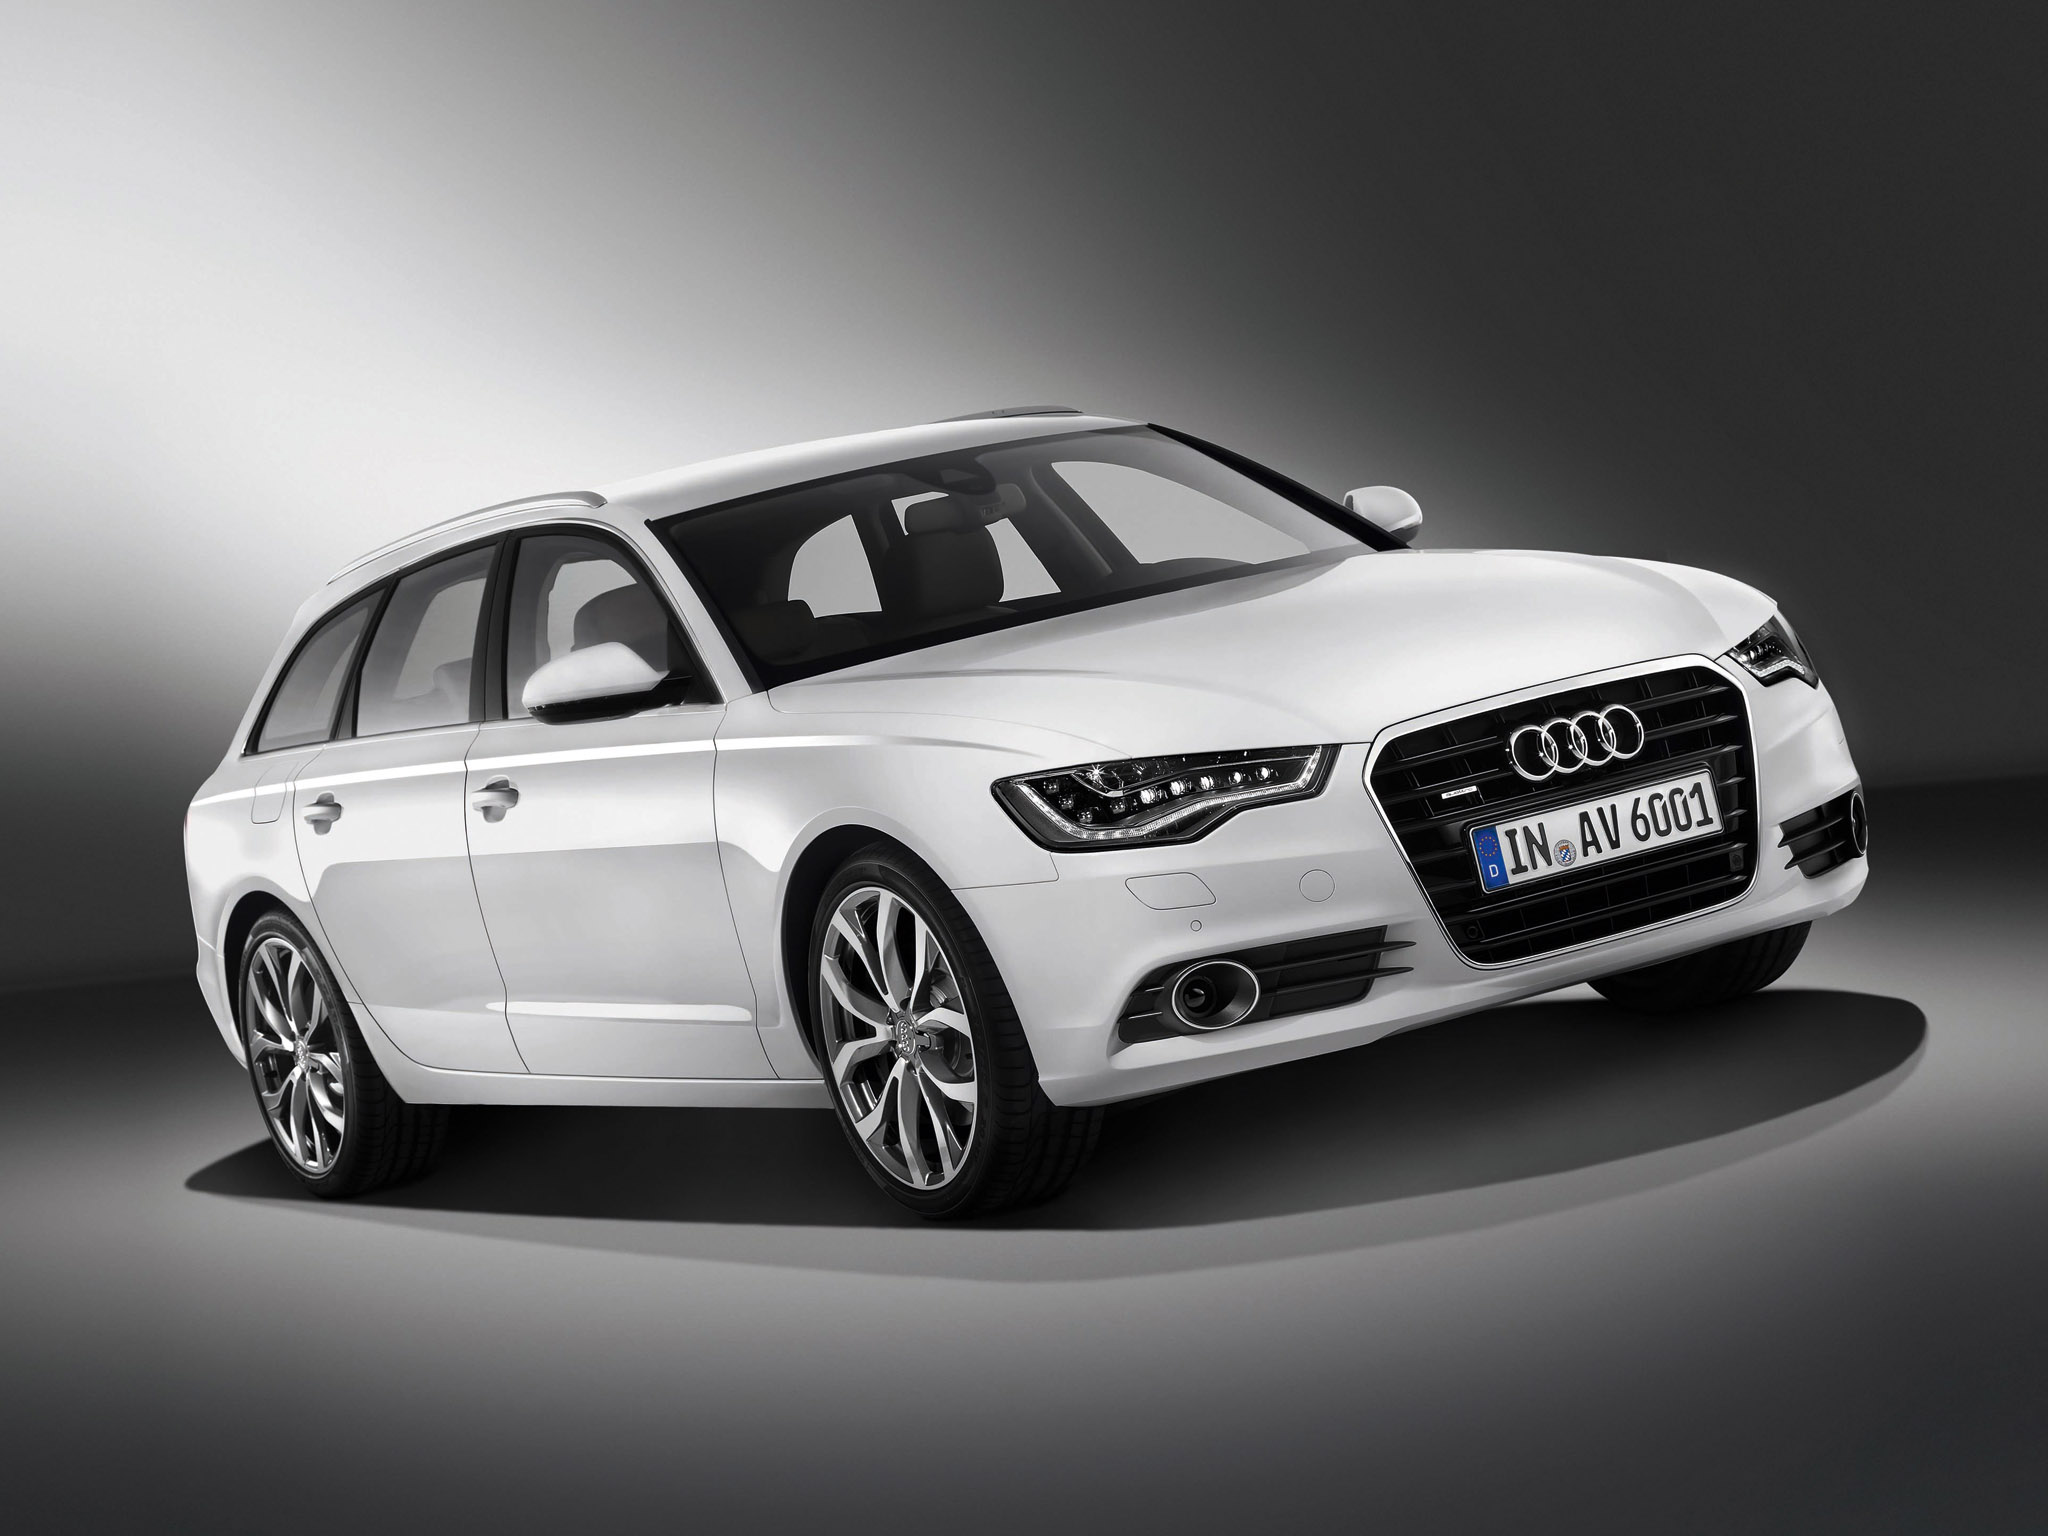 audi a6 avant tdi photos 7 on better parts ltd. Black Bedroom Furniture Sets. Home Design Ideas